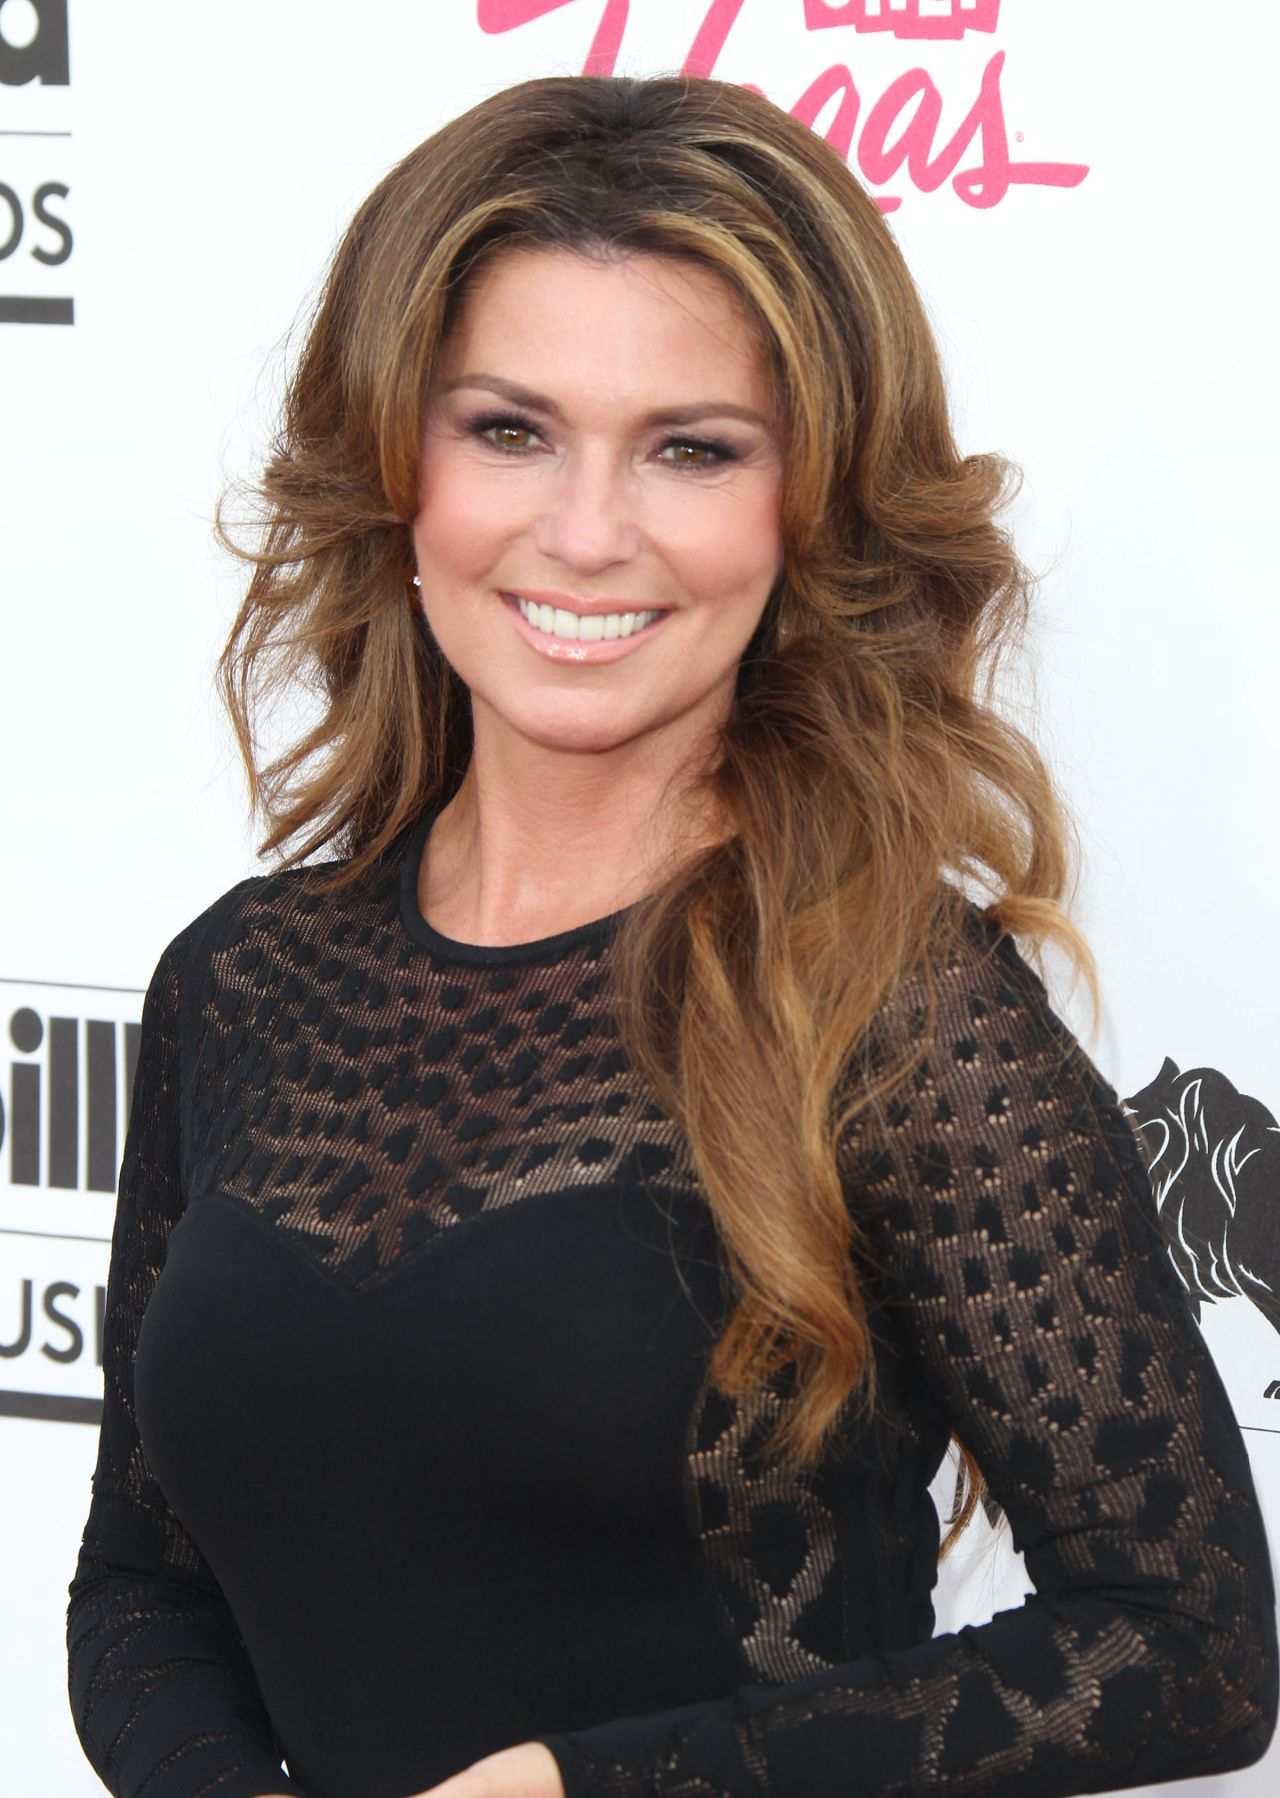 Shania Twain 2014 Billboard Music Awards In Las Vegas